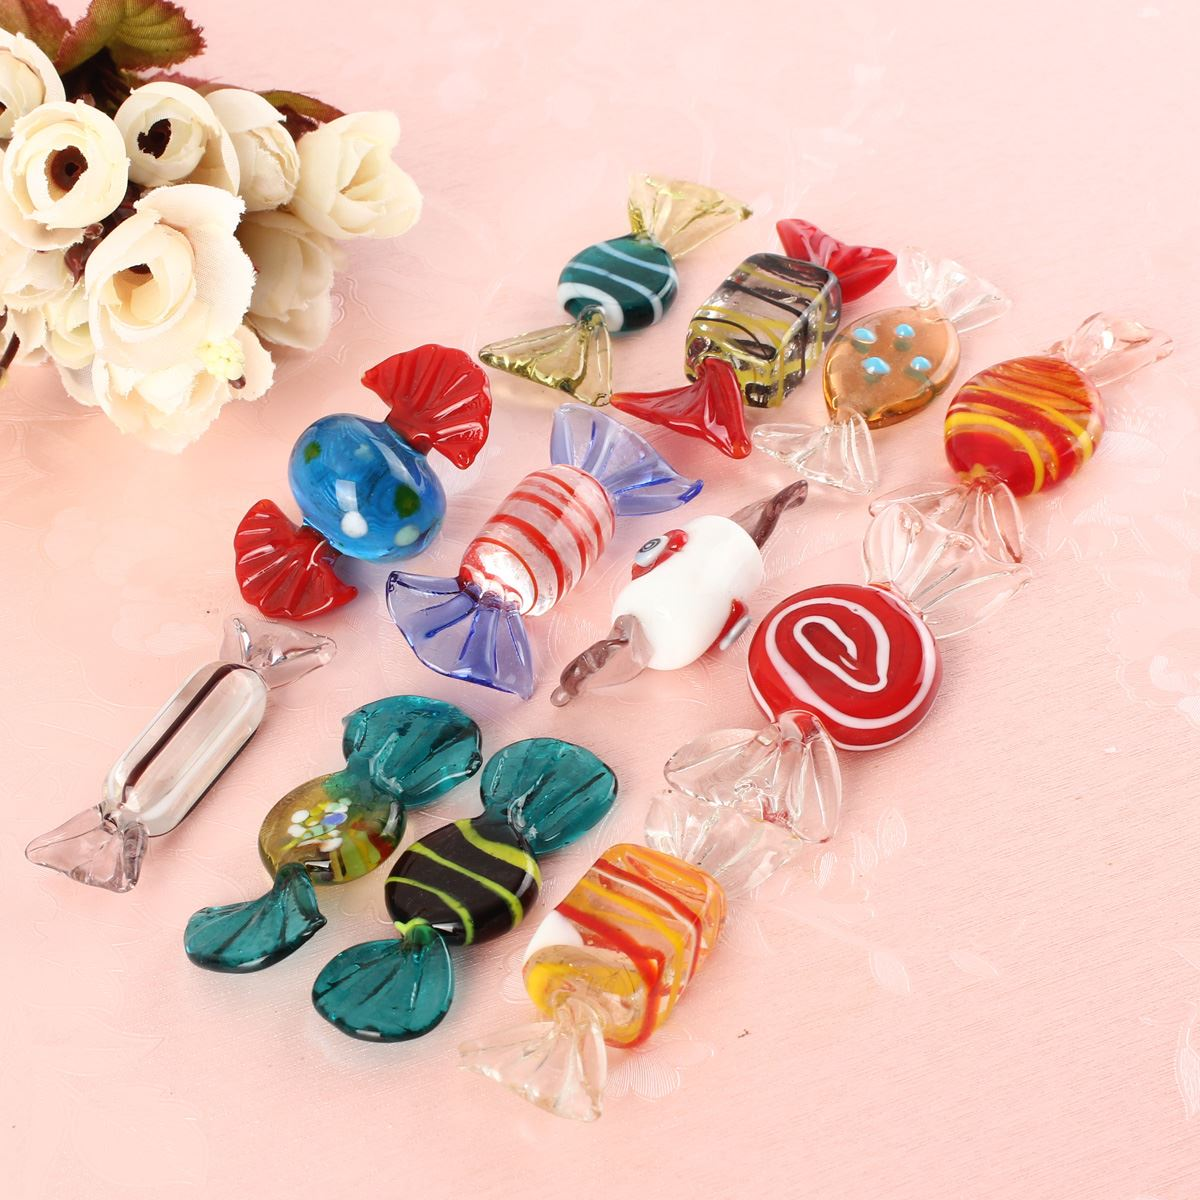 12pcs/set Wholesale Price Vintage Glass Sweets Xmax Wedding Candy Christmas Ornaments Fit For Decorations Pattern Randomly(China (Mainland))